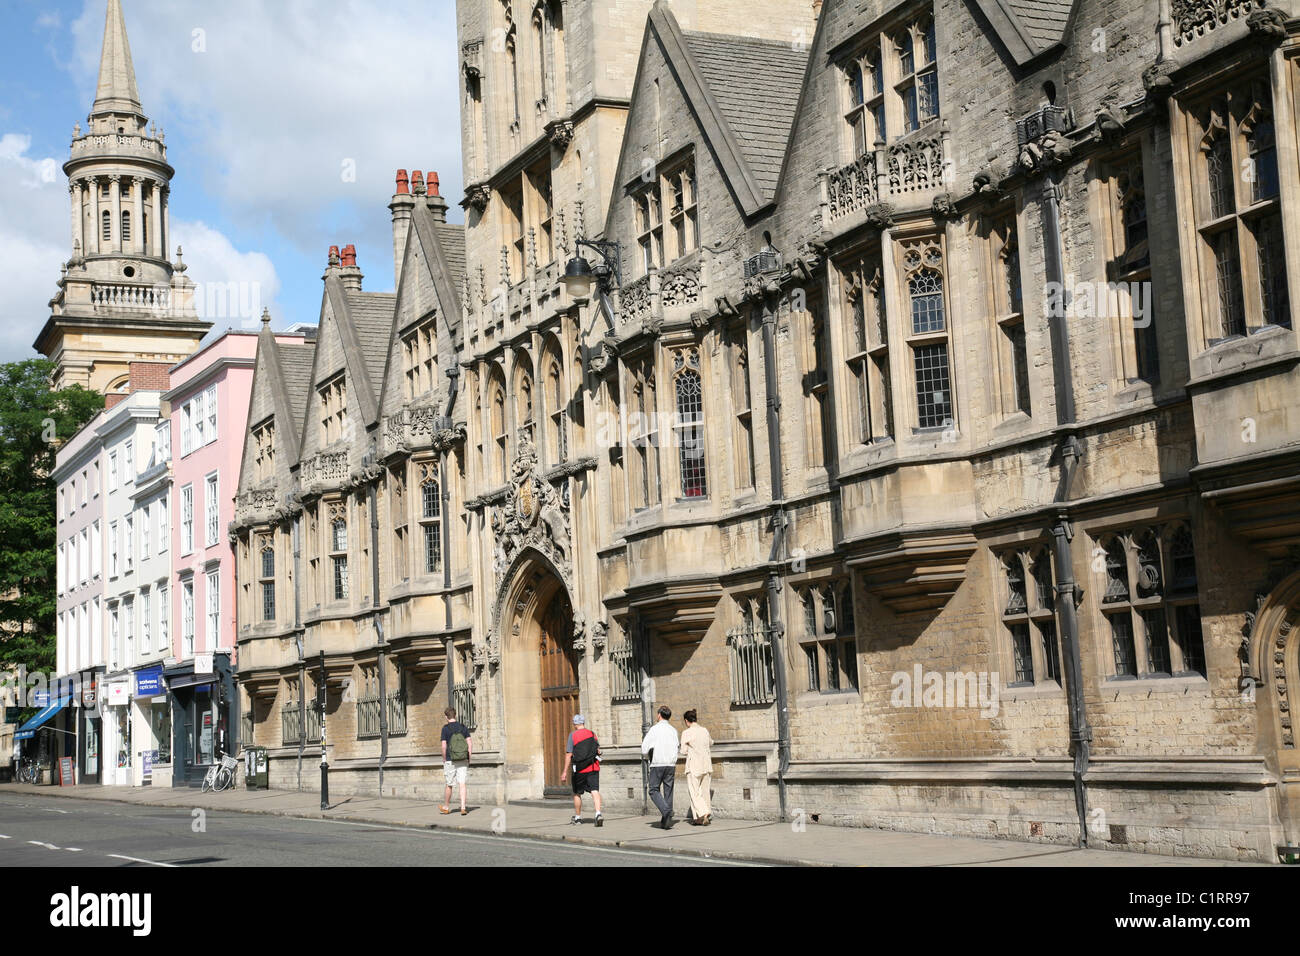 Oxford High Street and Brasenose College - Stock Image